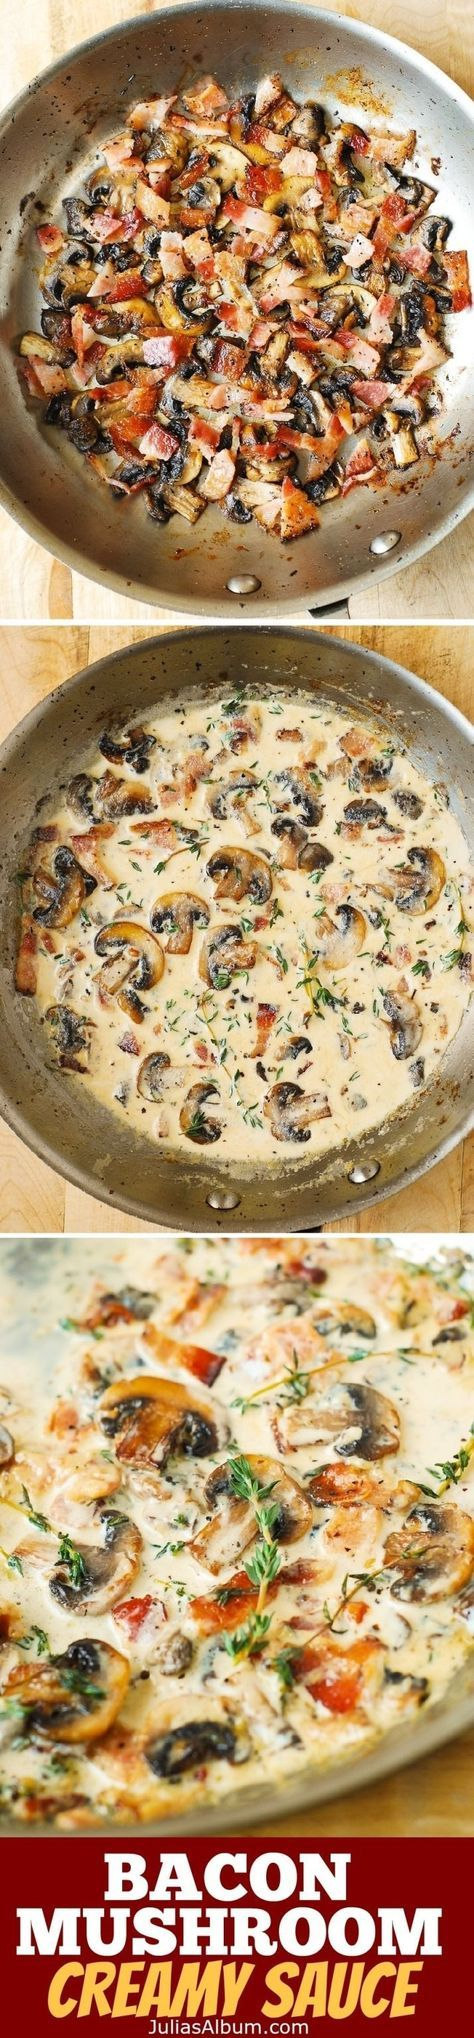 Creamy Mushroom Sauce With Bacon And Thyme A Great Accompaniment To Baked And Grilled Meats